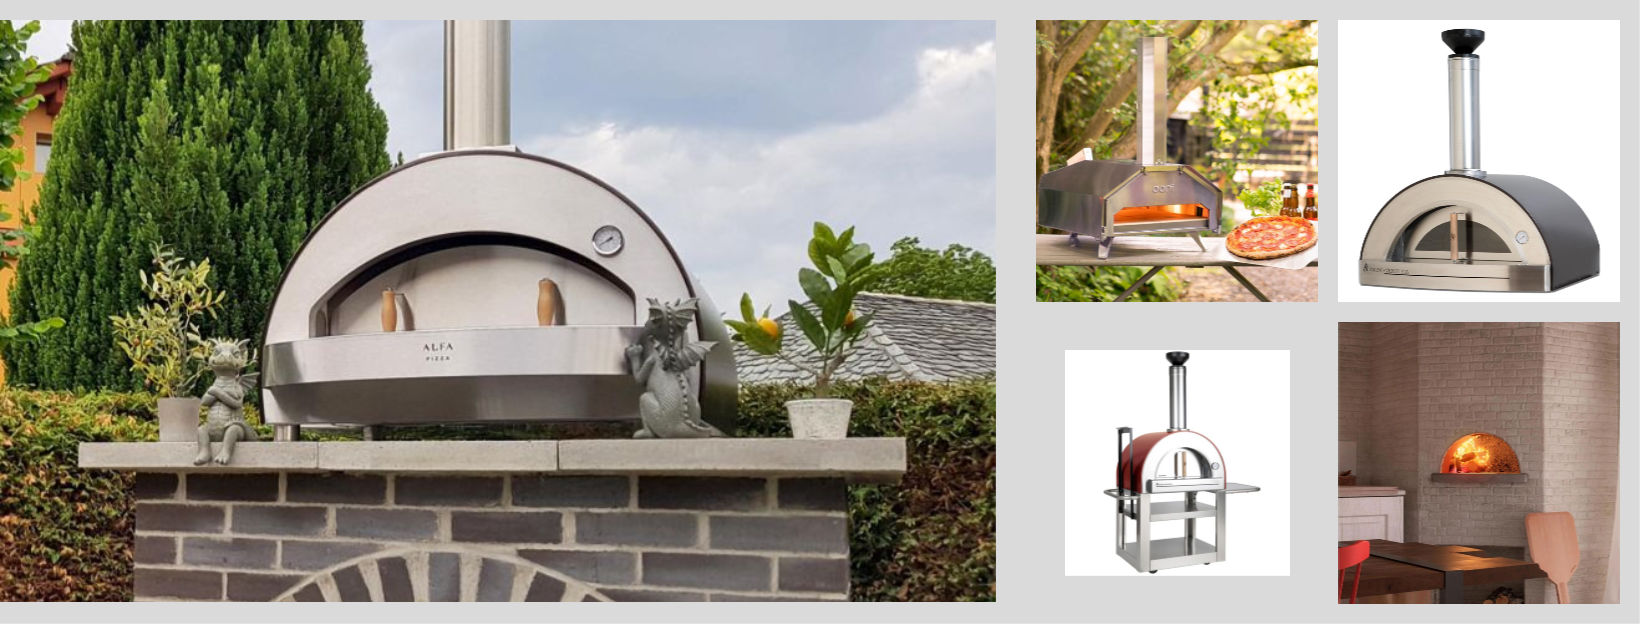 Best Wood Fired Pizza Oven Reviews